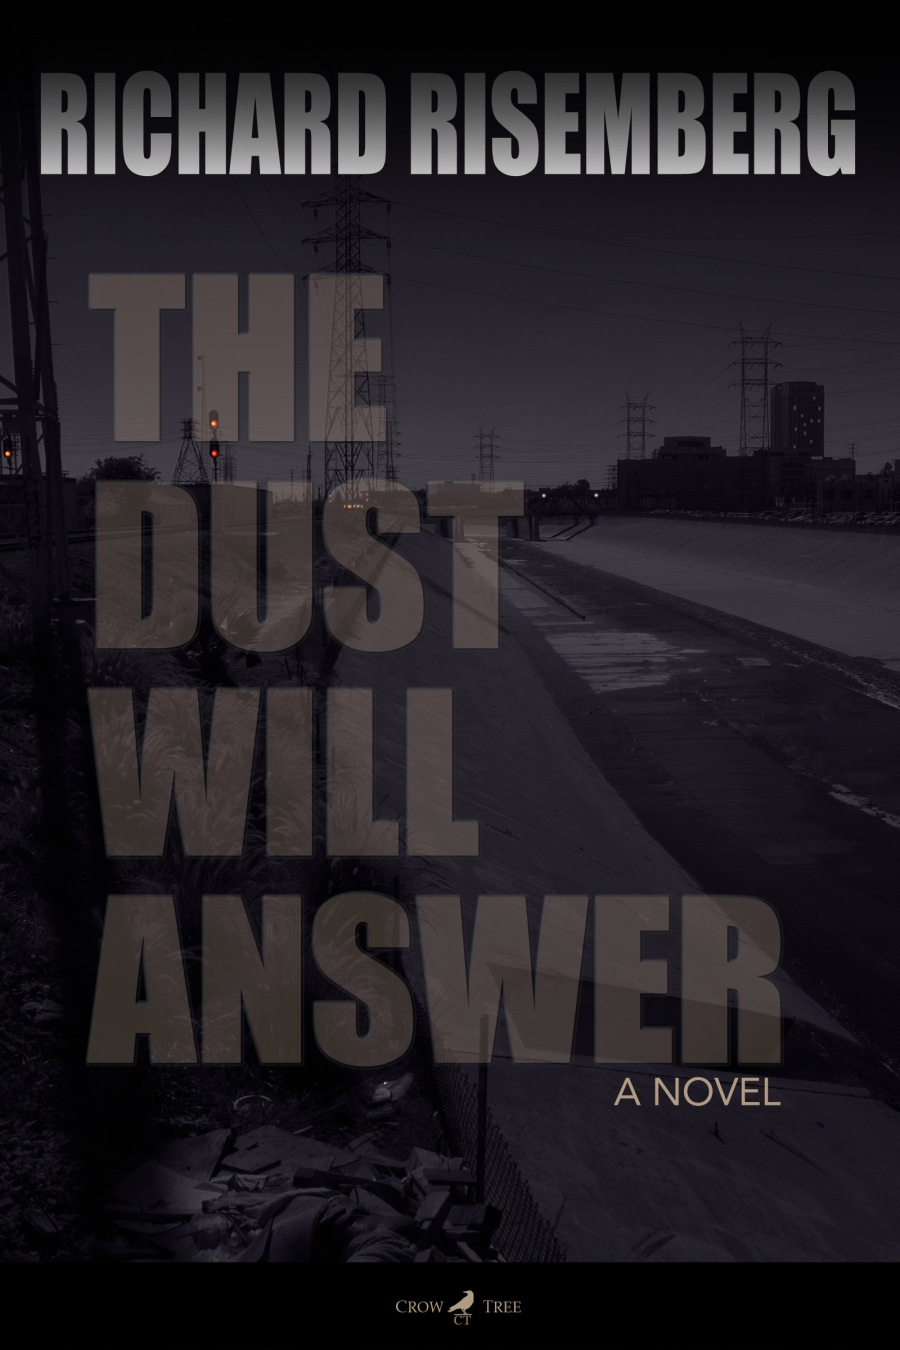 TheDustWillAnswer_COVER_DIGITAL_Final